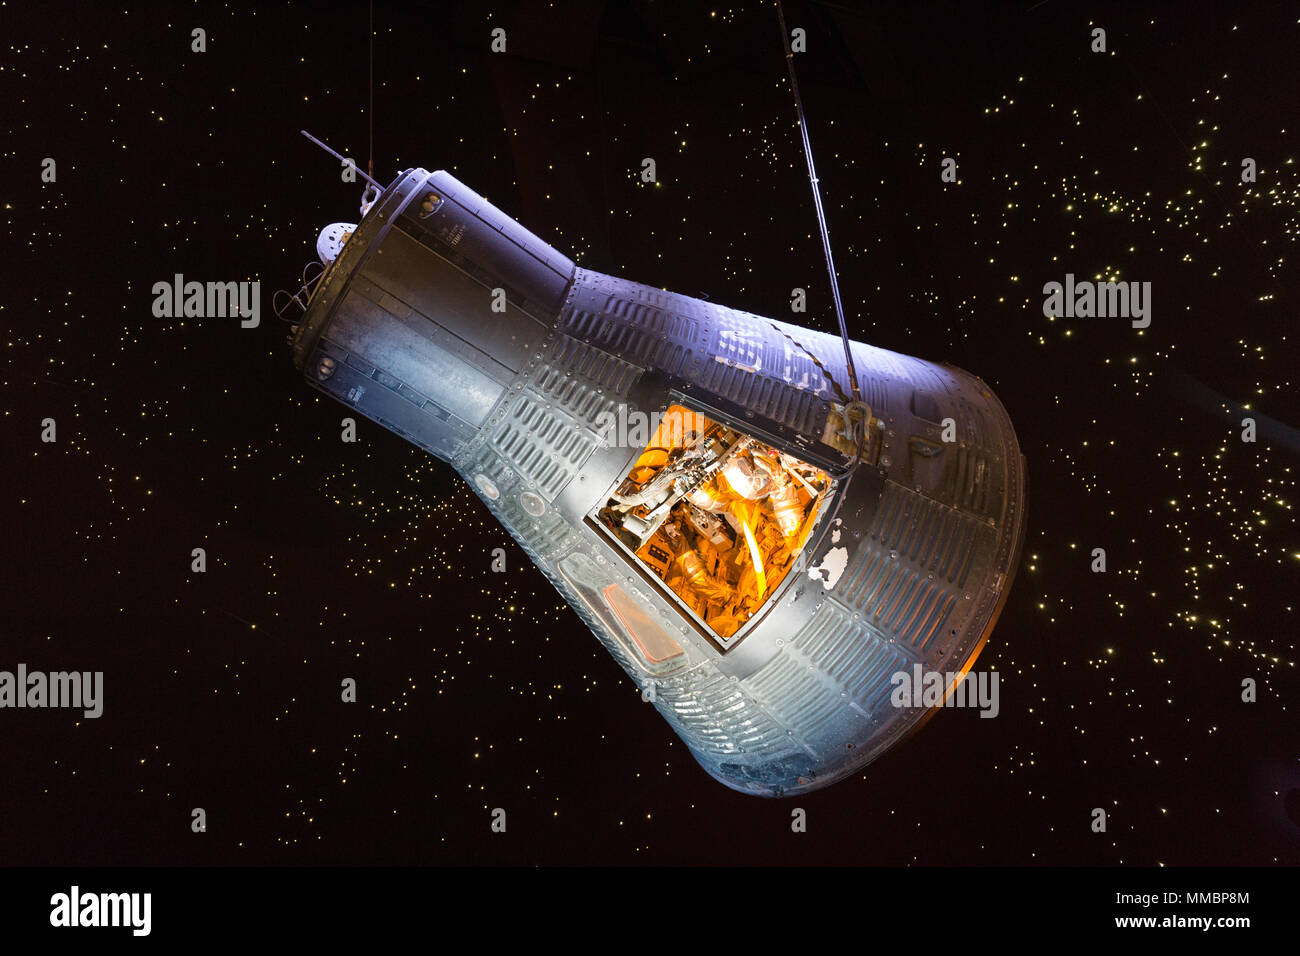 Original Mercury spacecraft, Faith 7, Johnson Space Center, NASA, Houston Texas USA - Stock Image